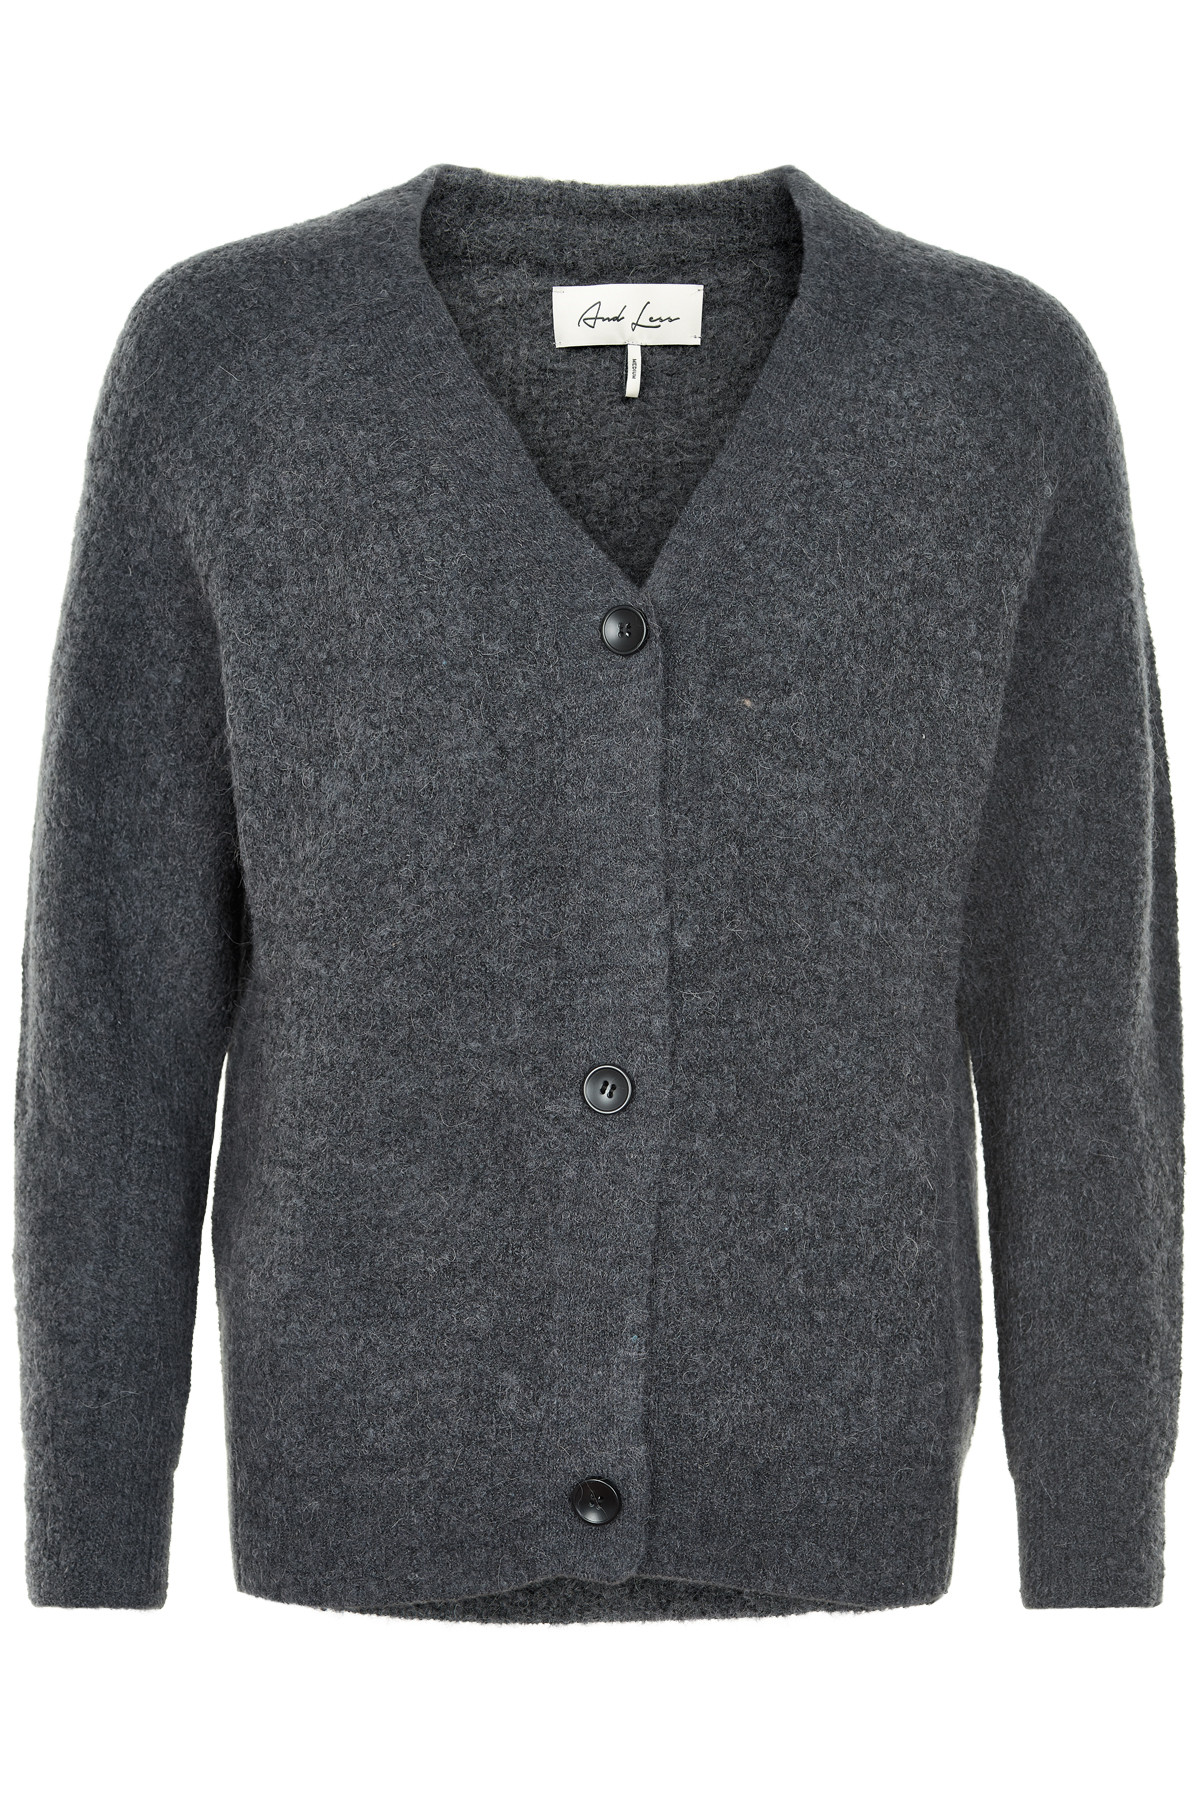 Image of   AND LESS ALENEN CARDIGAN 5519210 F (Folkstone, L)